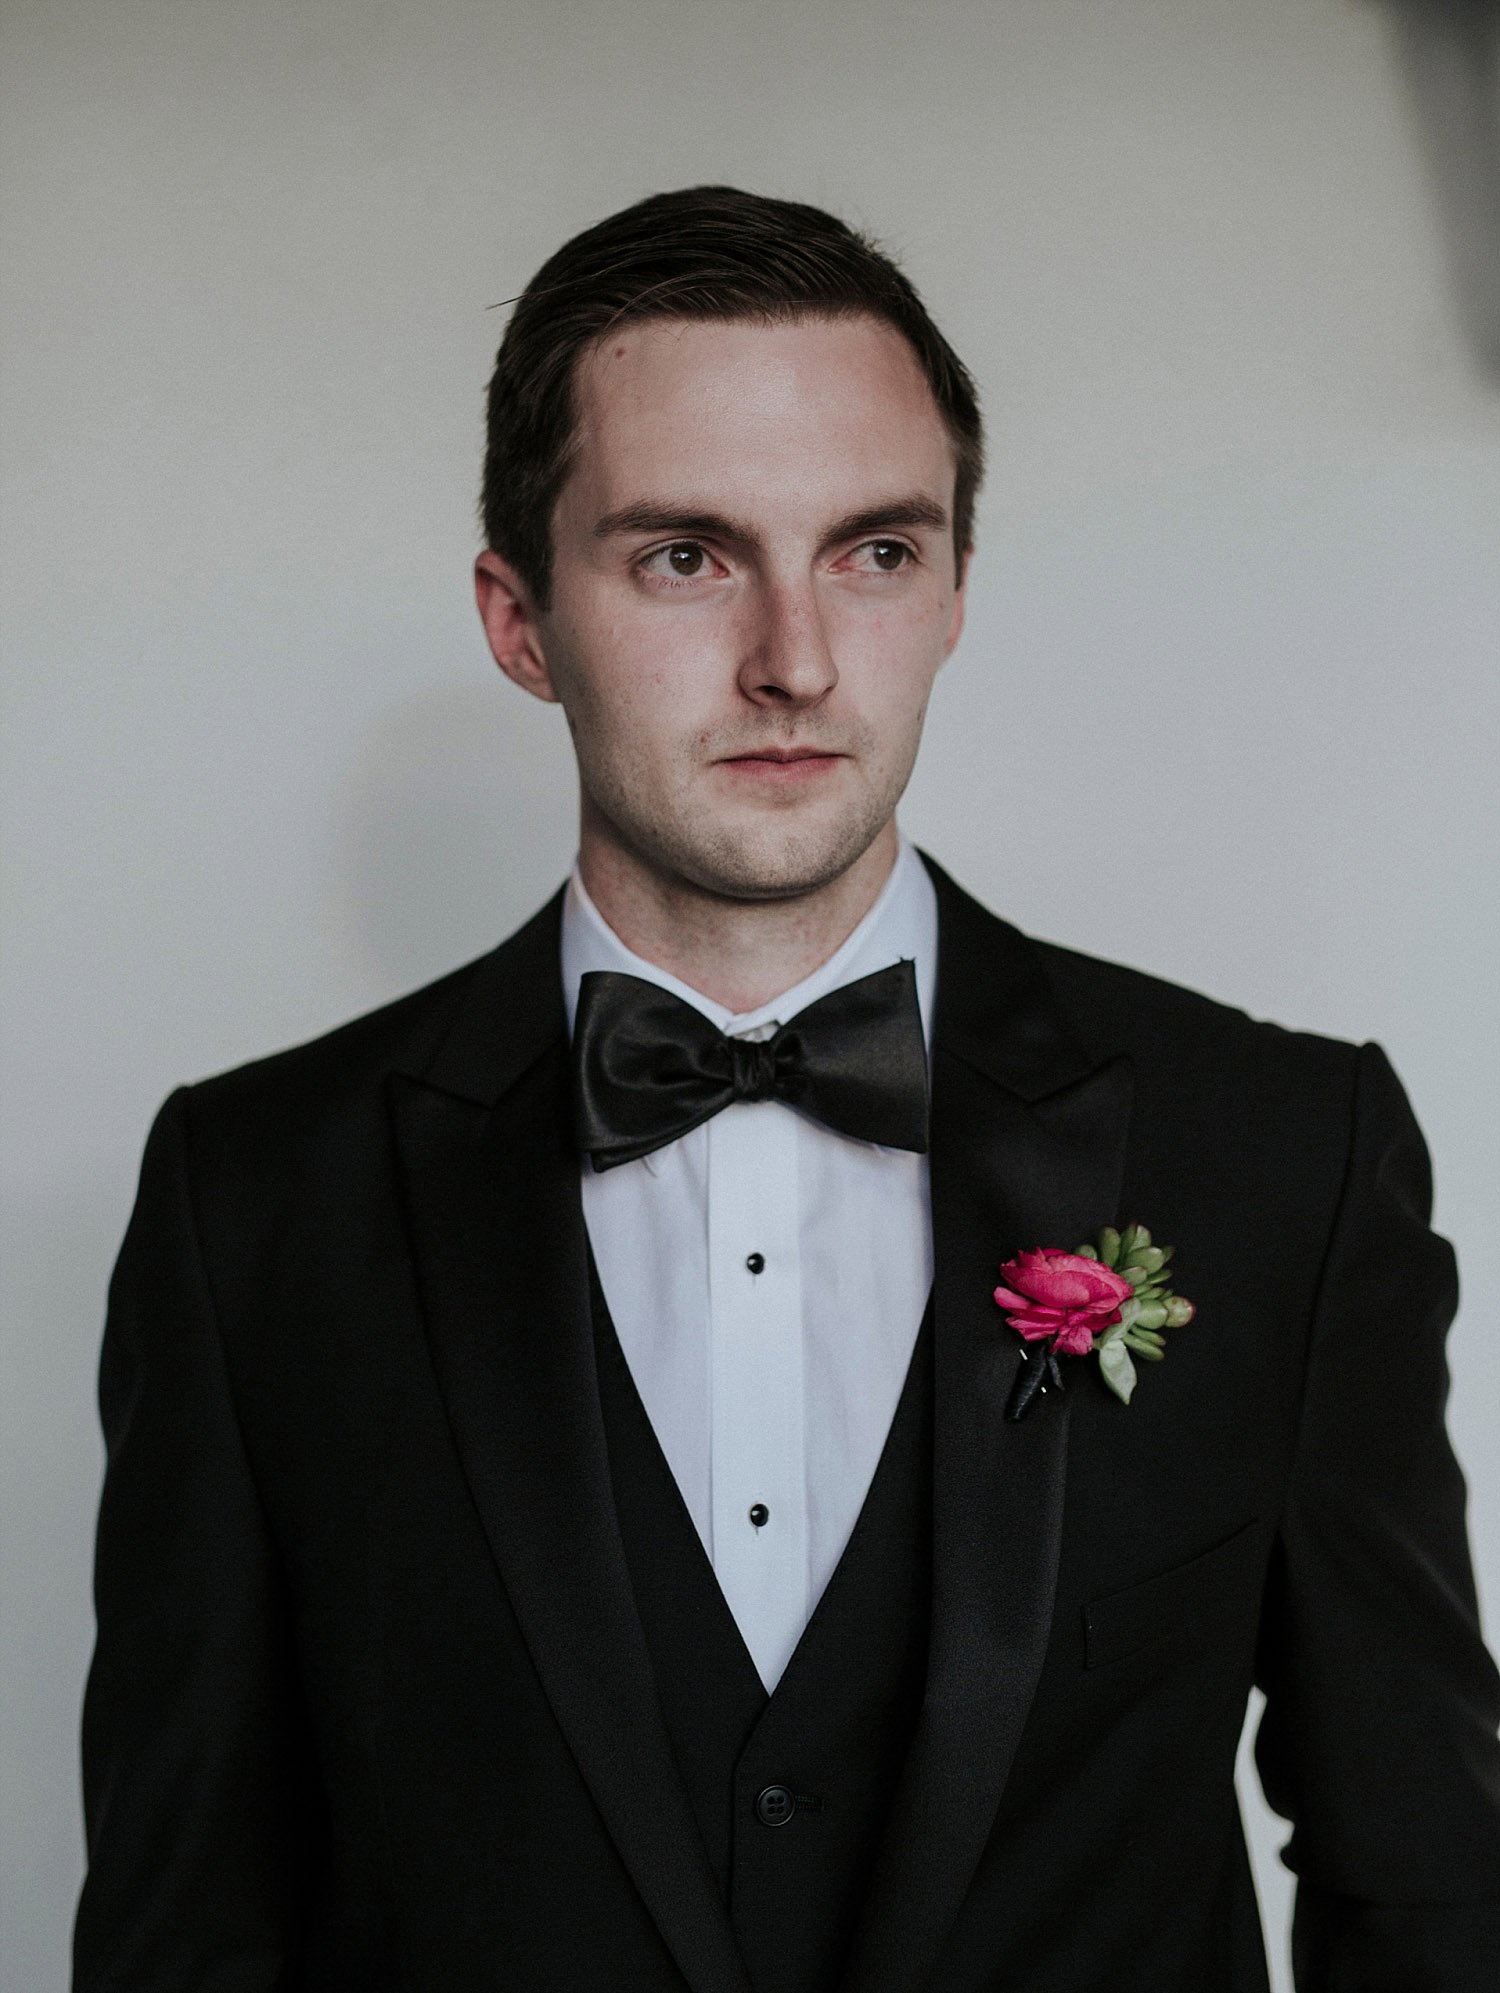 Groom wearing a black tux and pink boutonniere